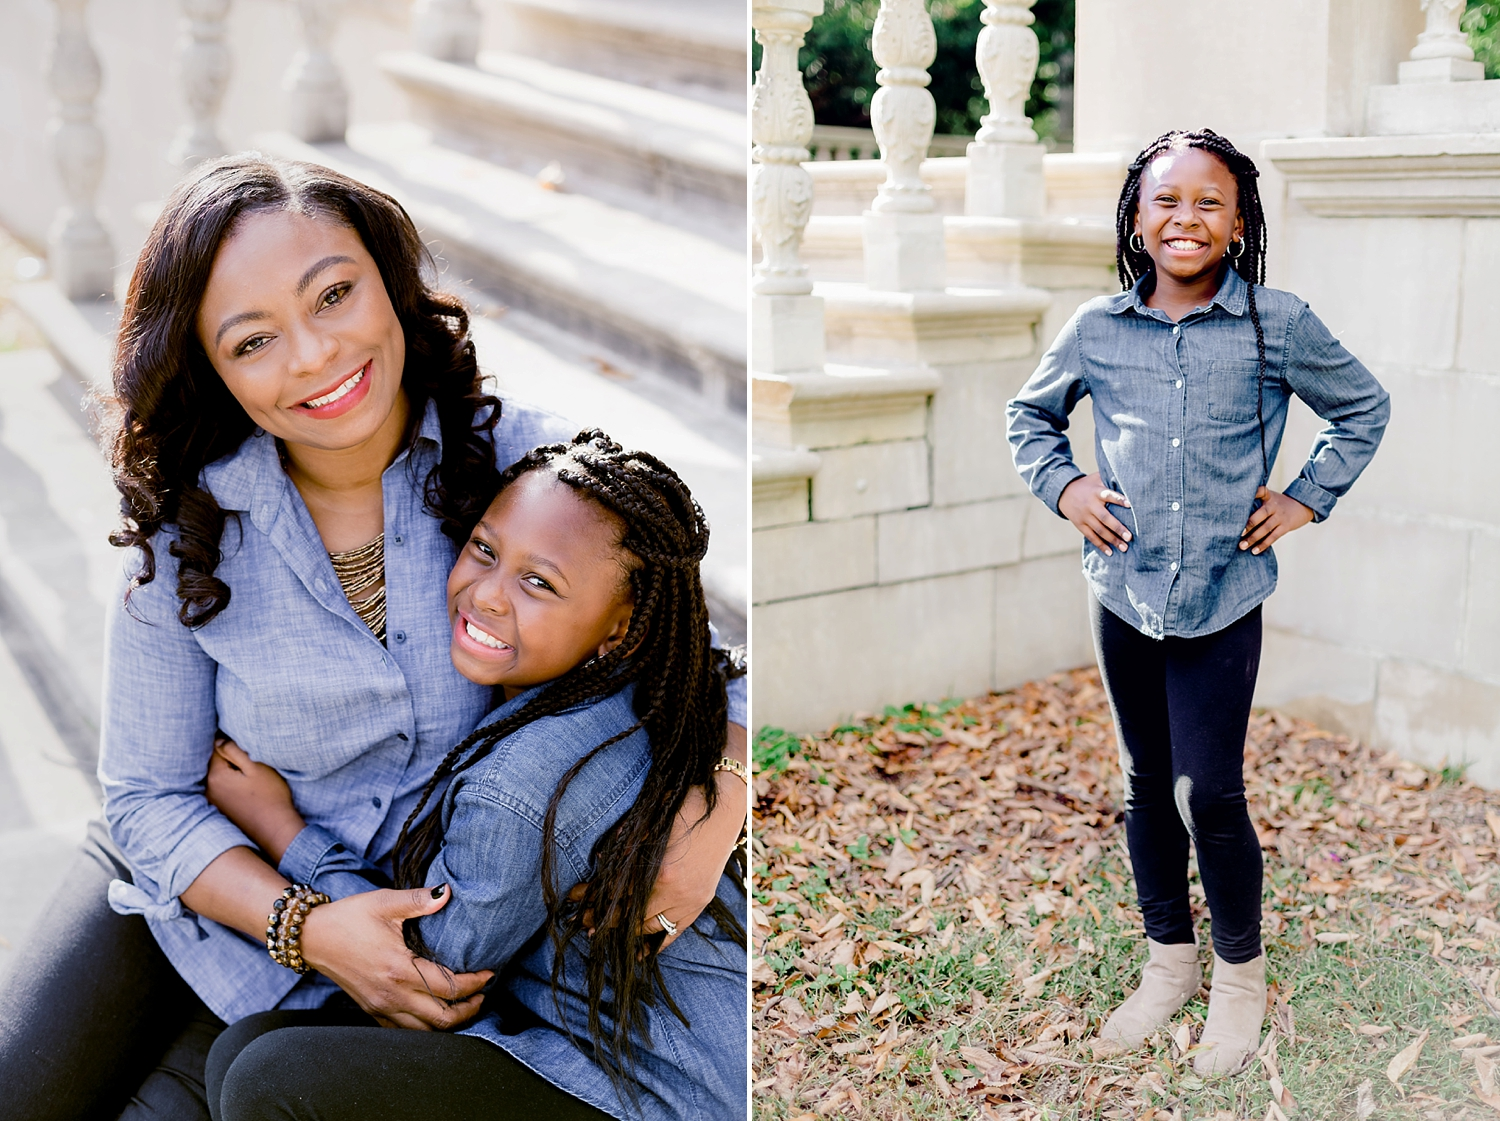 mother and daughter embraced in a hug for family photo